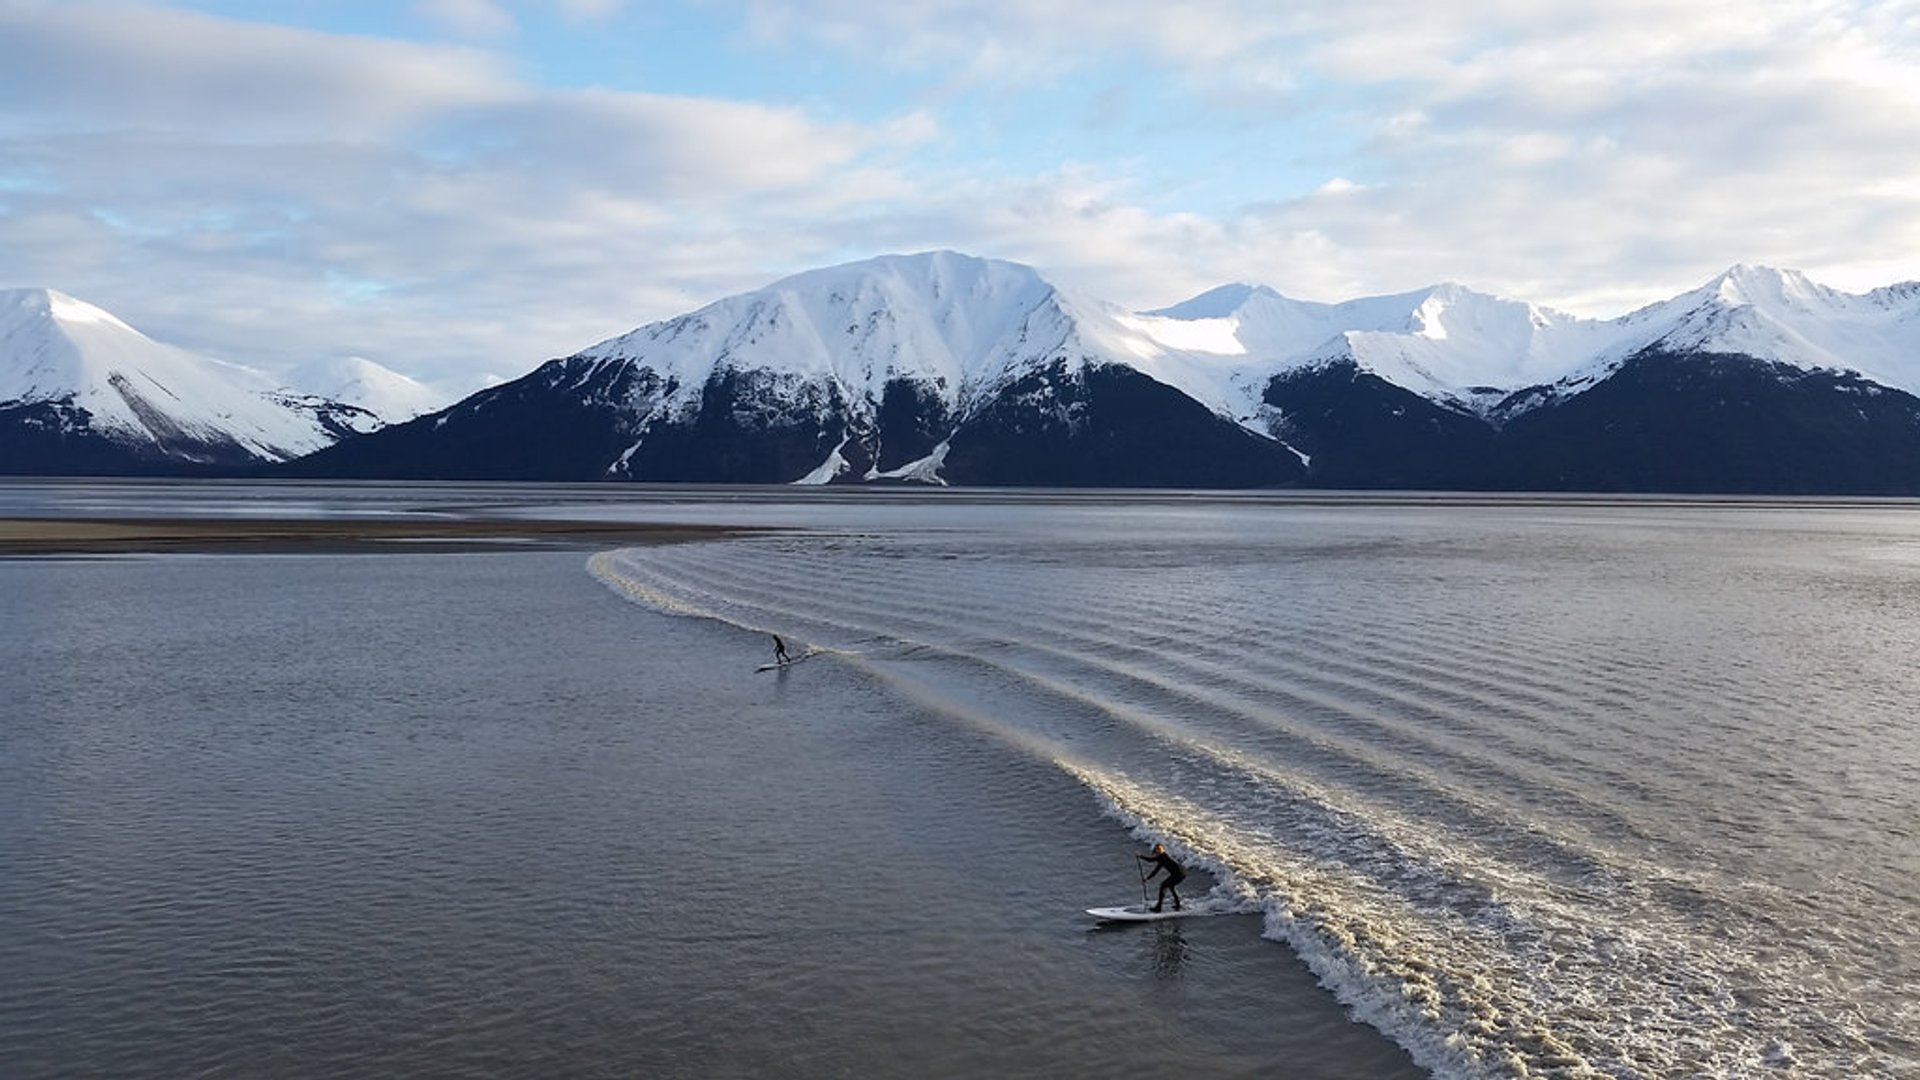 Bore Tide in Alaska 2020 - Best Time